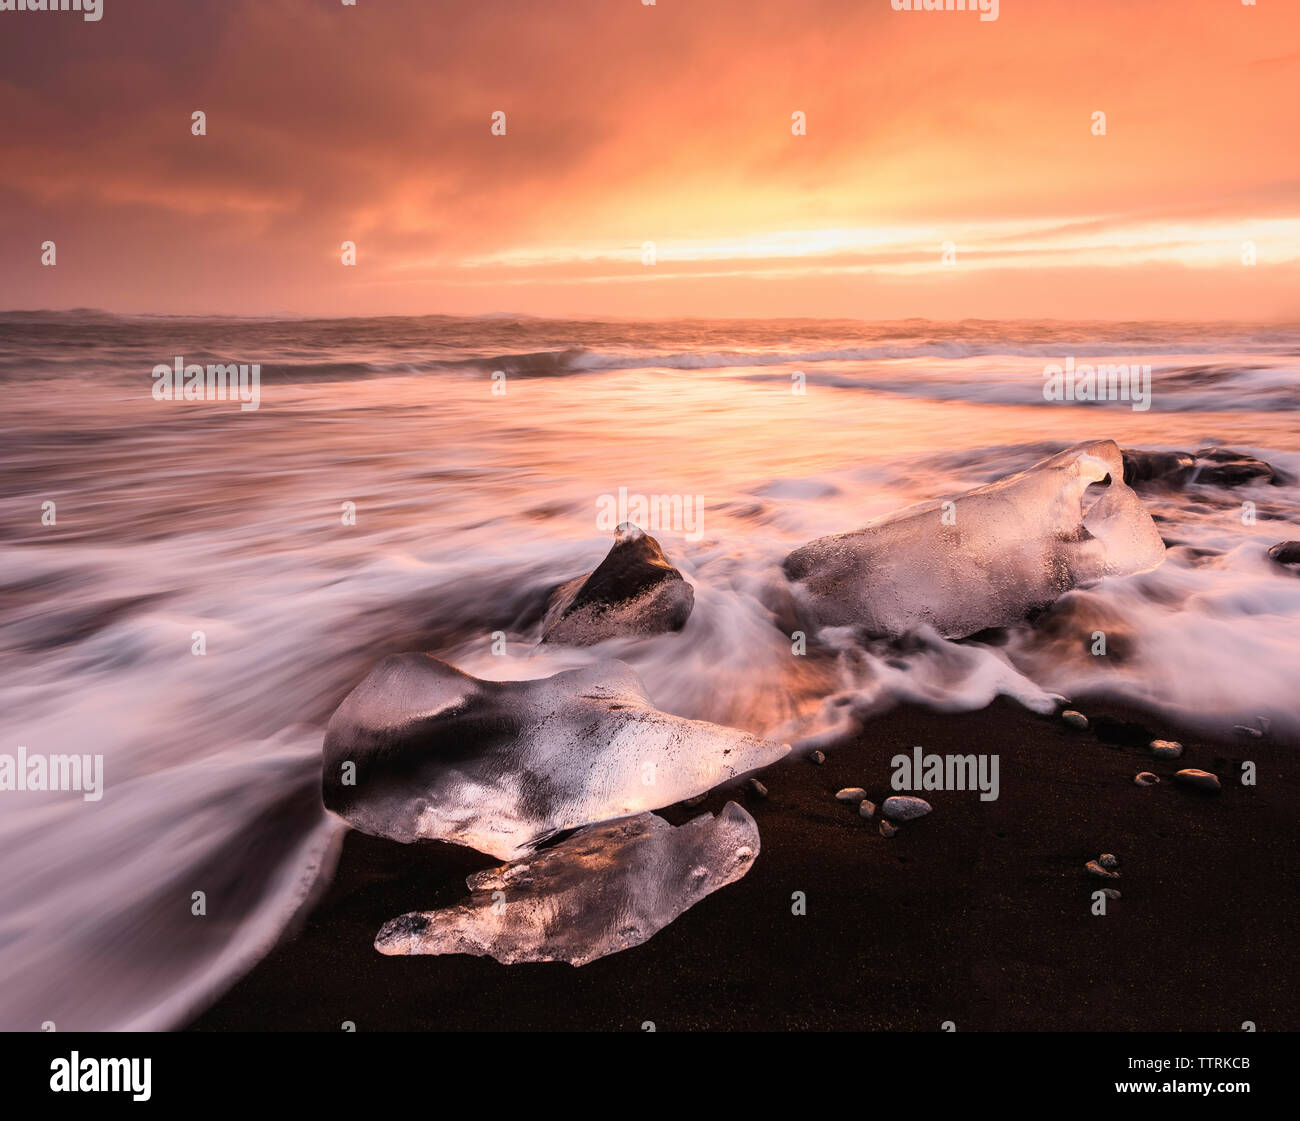 Scenic view of Jokulsarlon Lagoon against cloudy sky during sunset - Stock Image